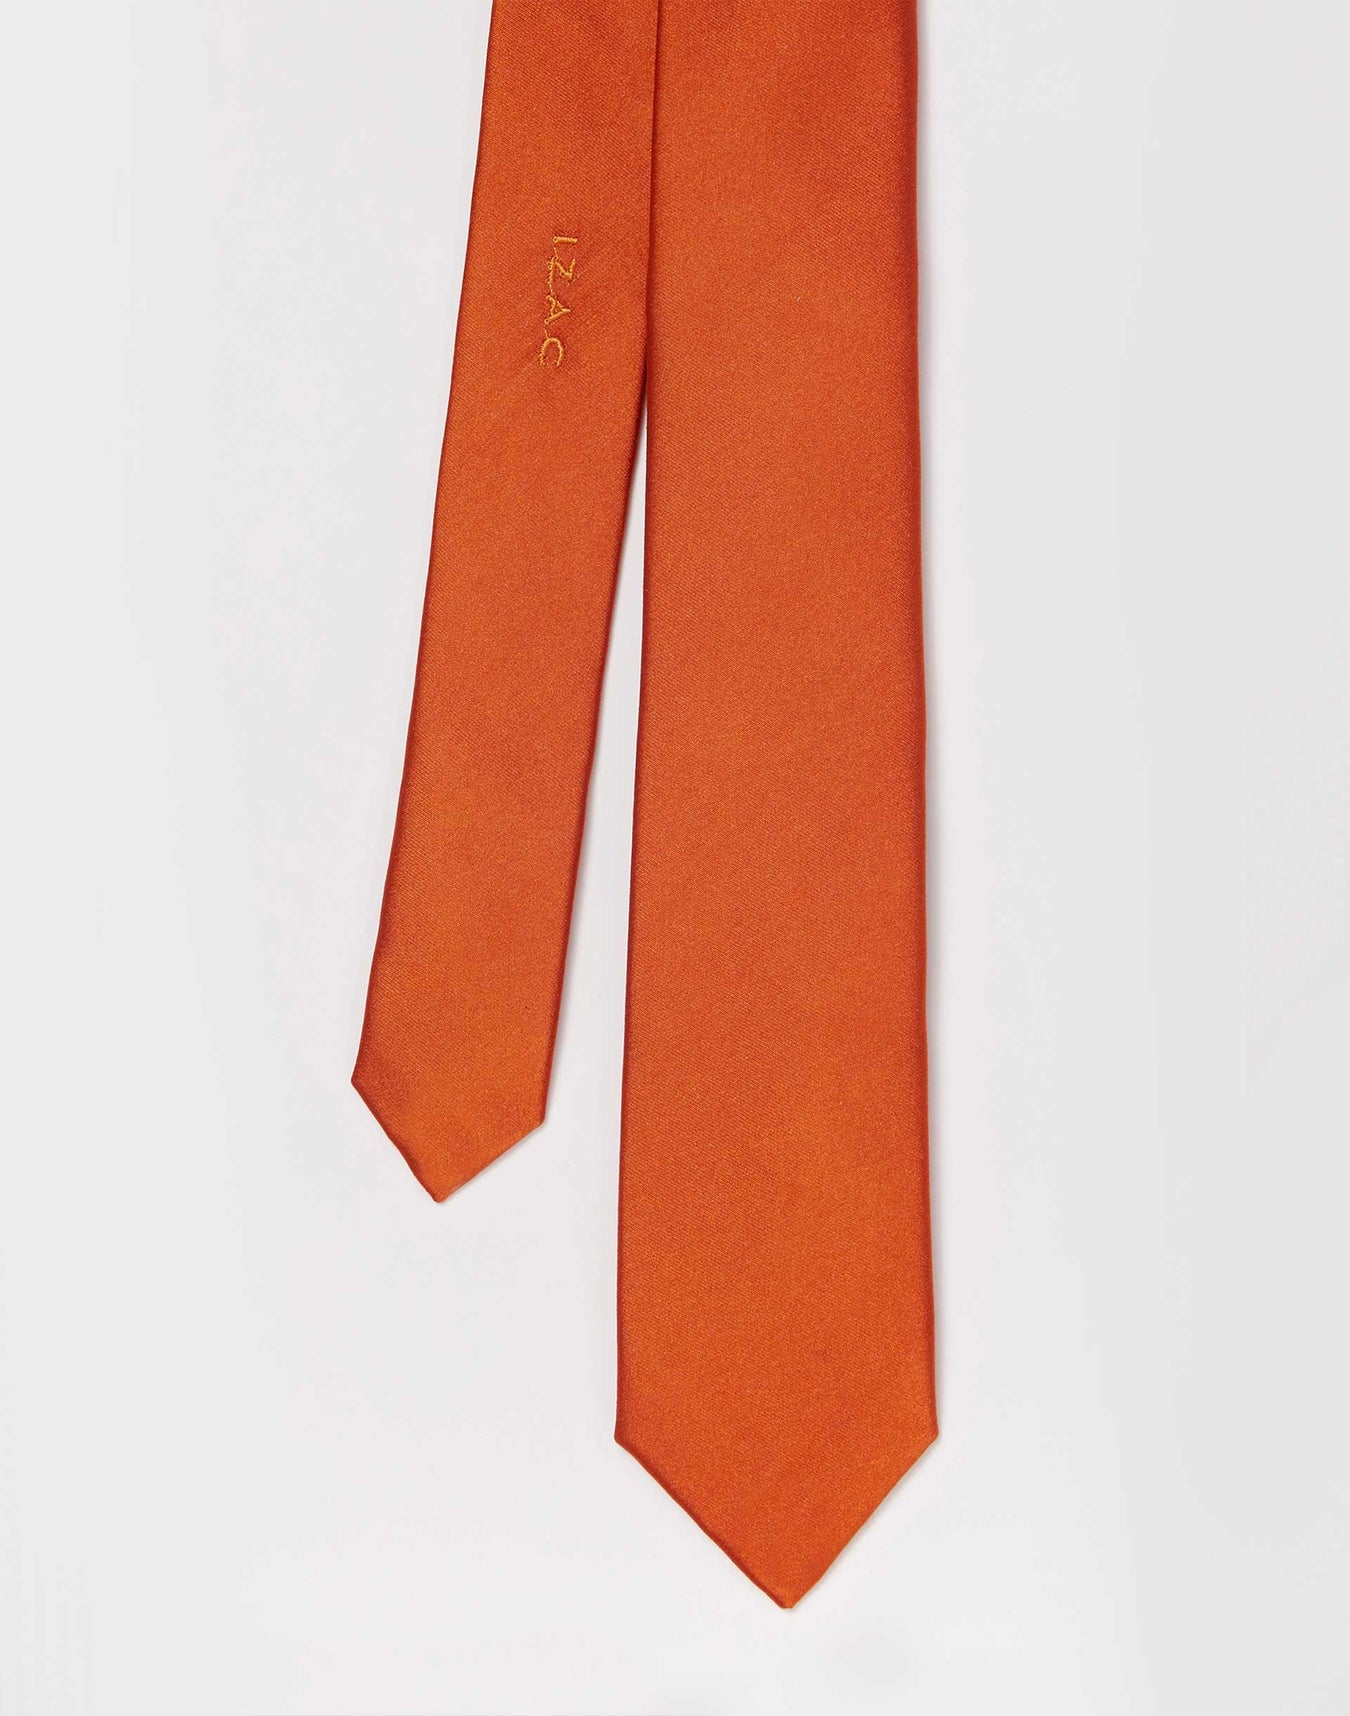 Cravate Slim Satin Orange